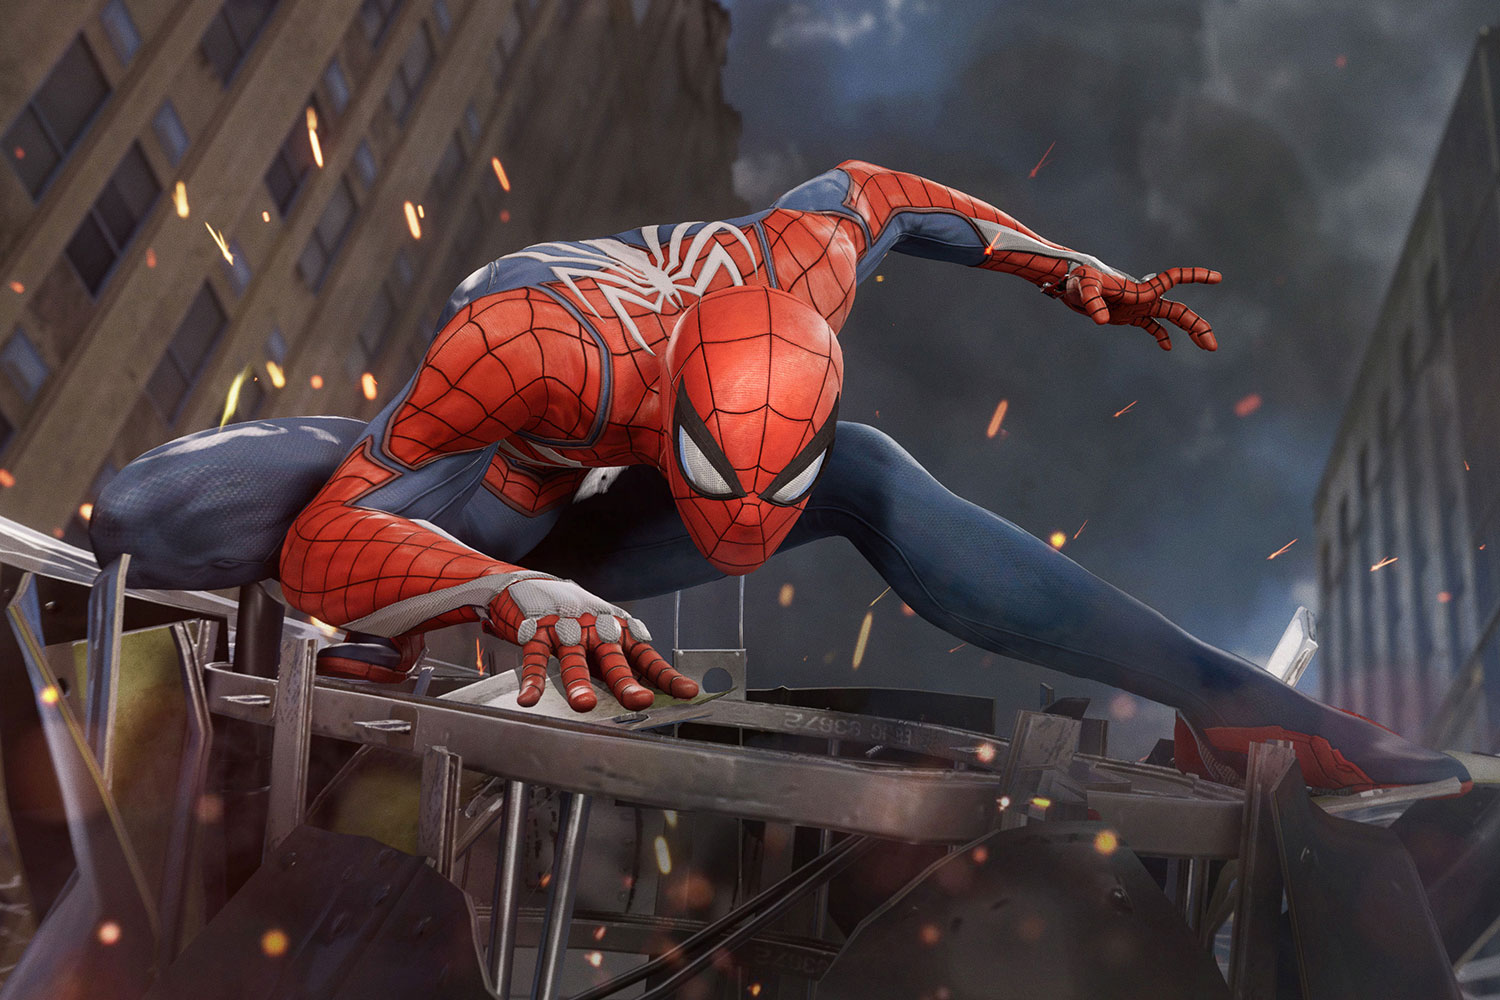 Marvel's Spider-Man by Insomniac Games is now available for PS4.